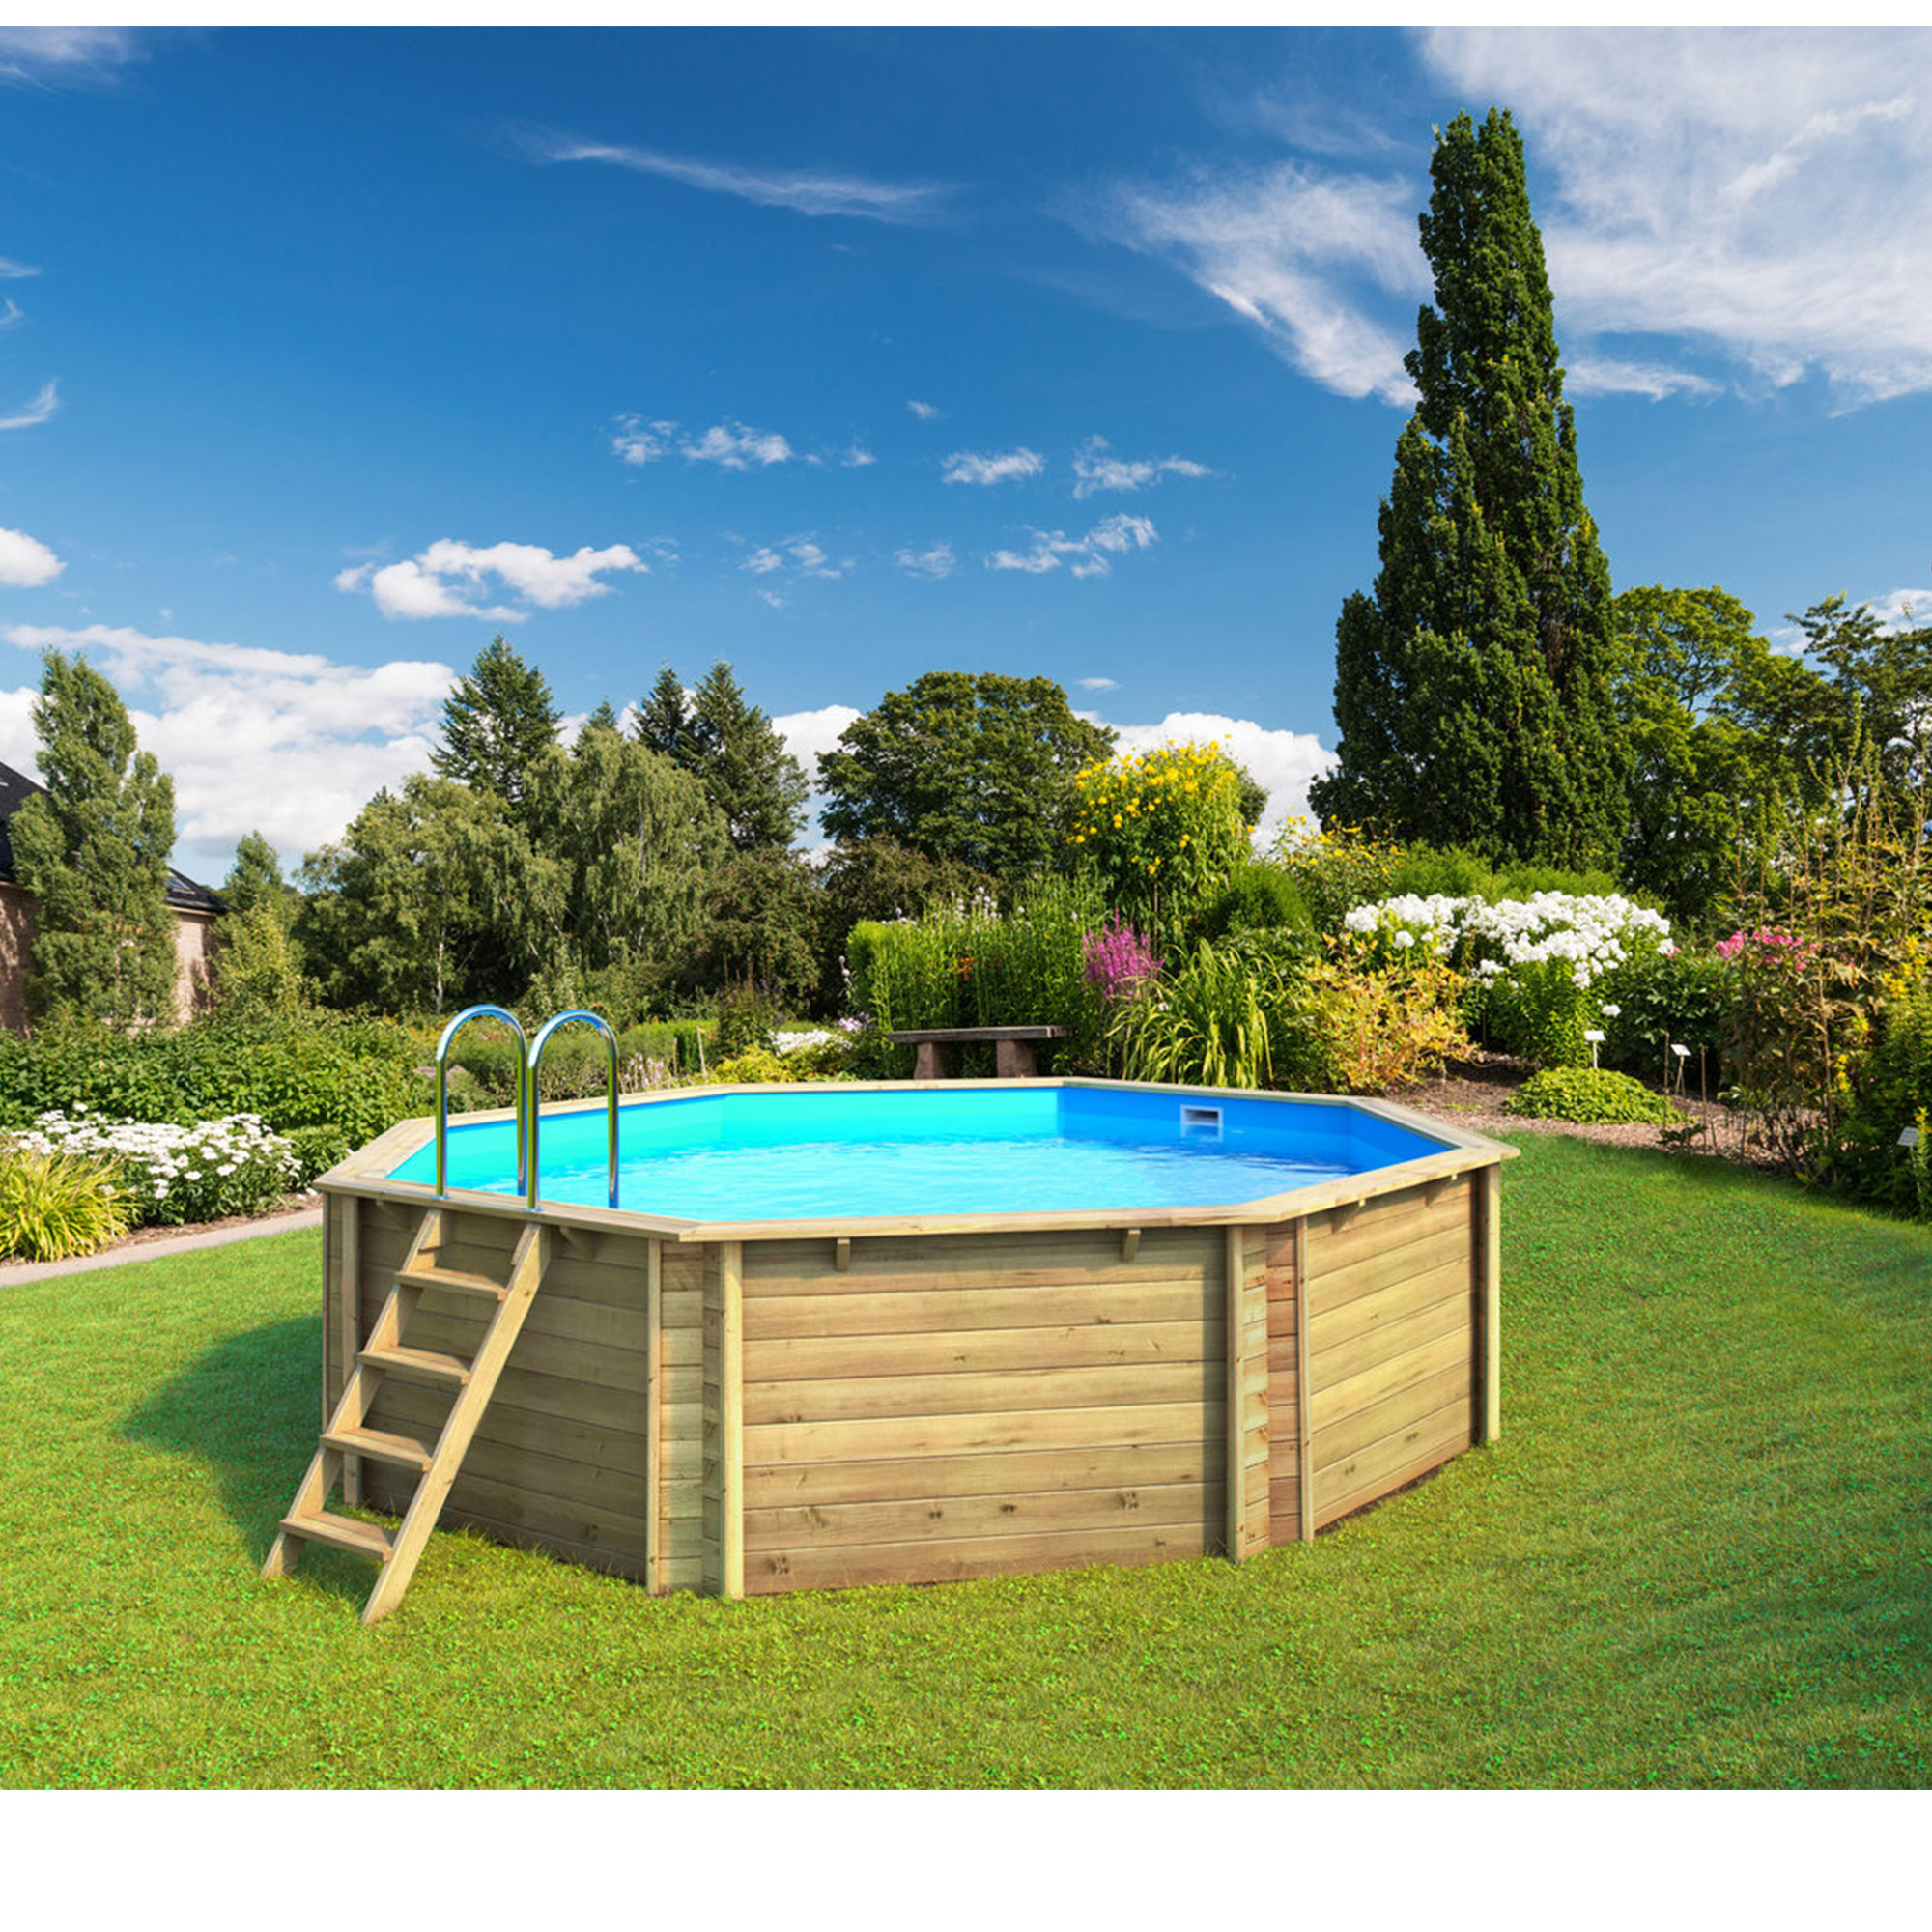 piscine bois octogonale exclusivement hors sol tropic